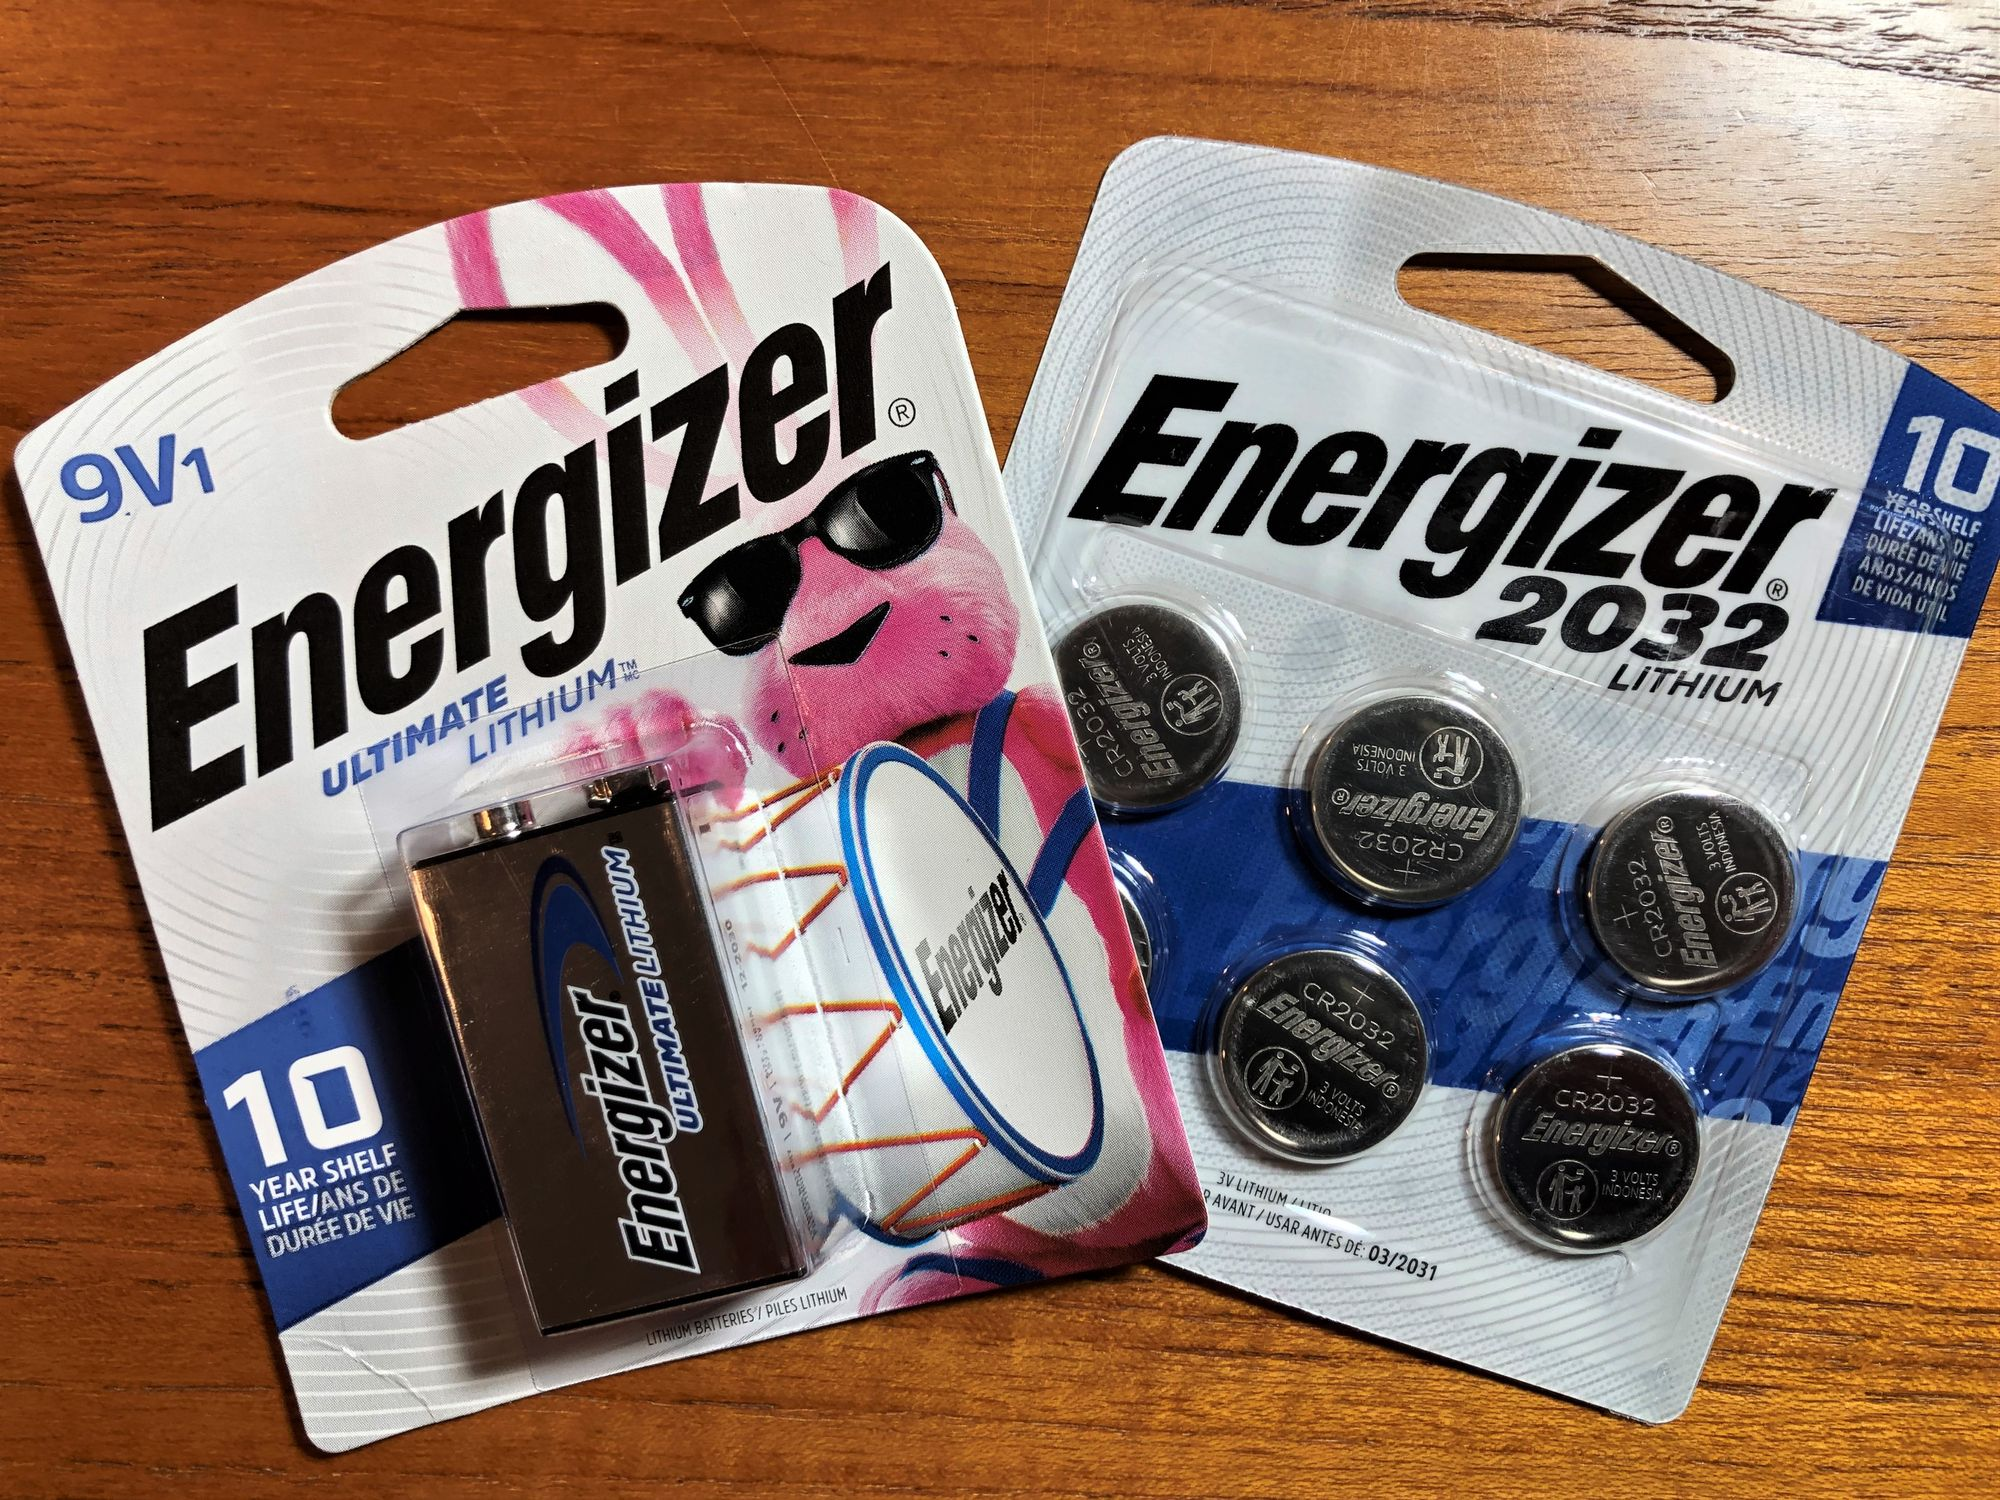 Single-use non-rechargeable lithium batteries